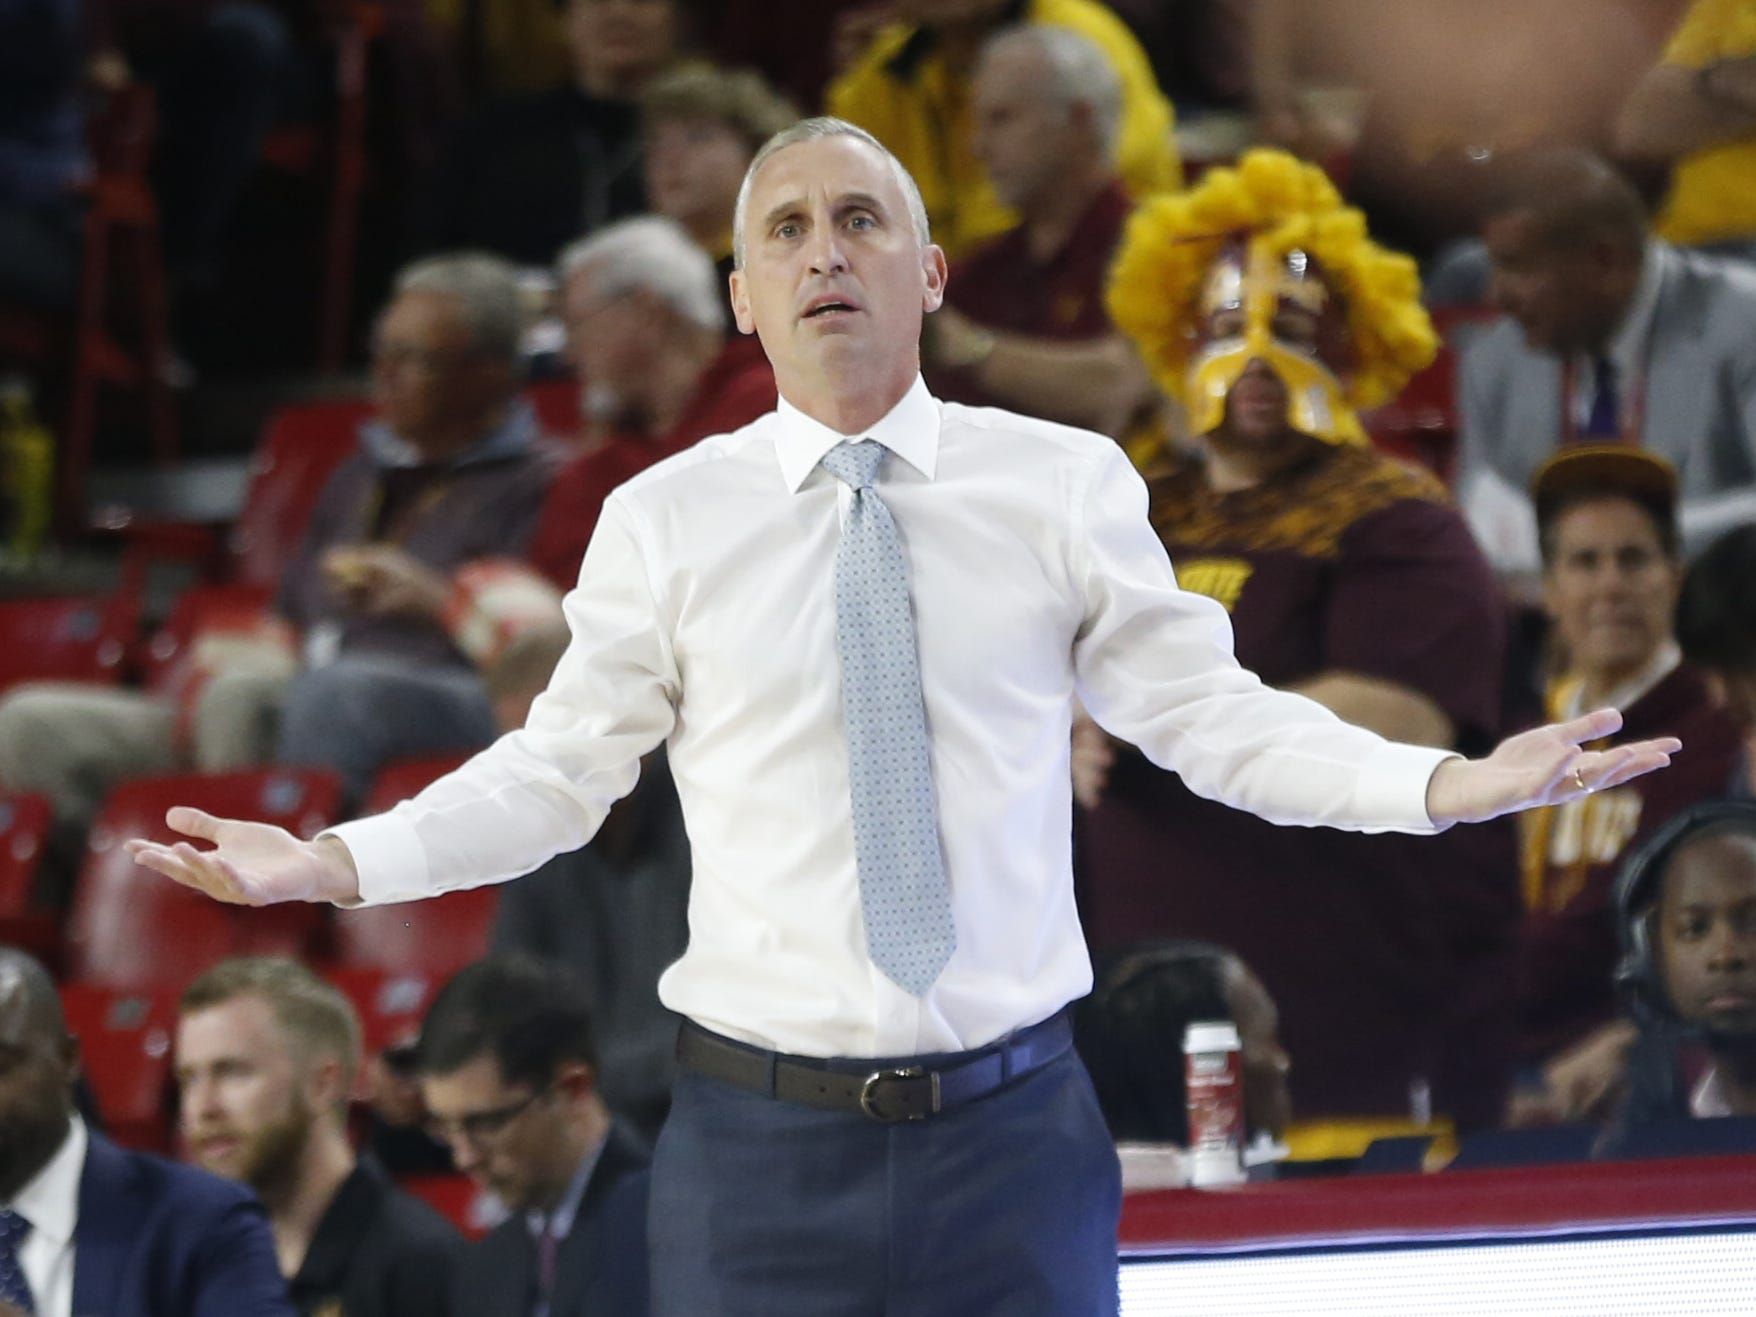 Arizona State head coach Bobby Hurley argues with an official during the first half against Long Beach State at Wells Fargo Arena in Tempe, Ariz. on November 12, 2018.